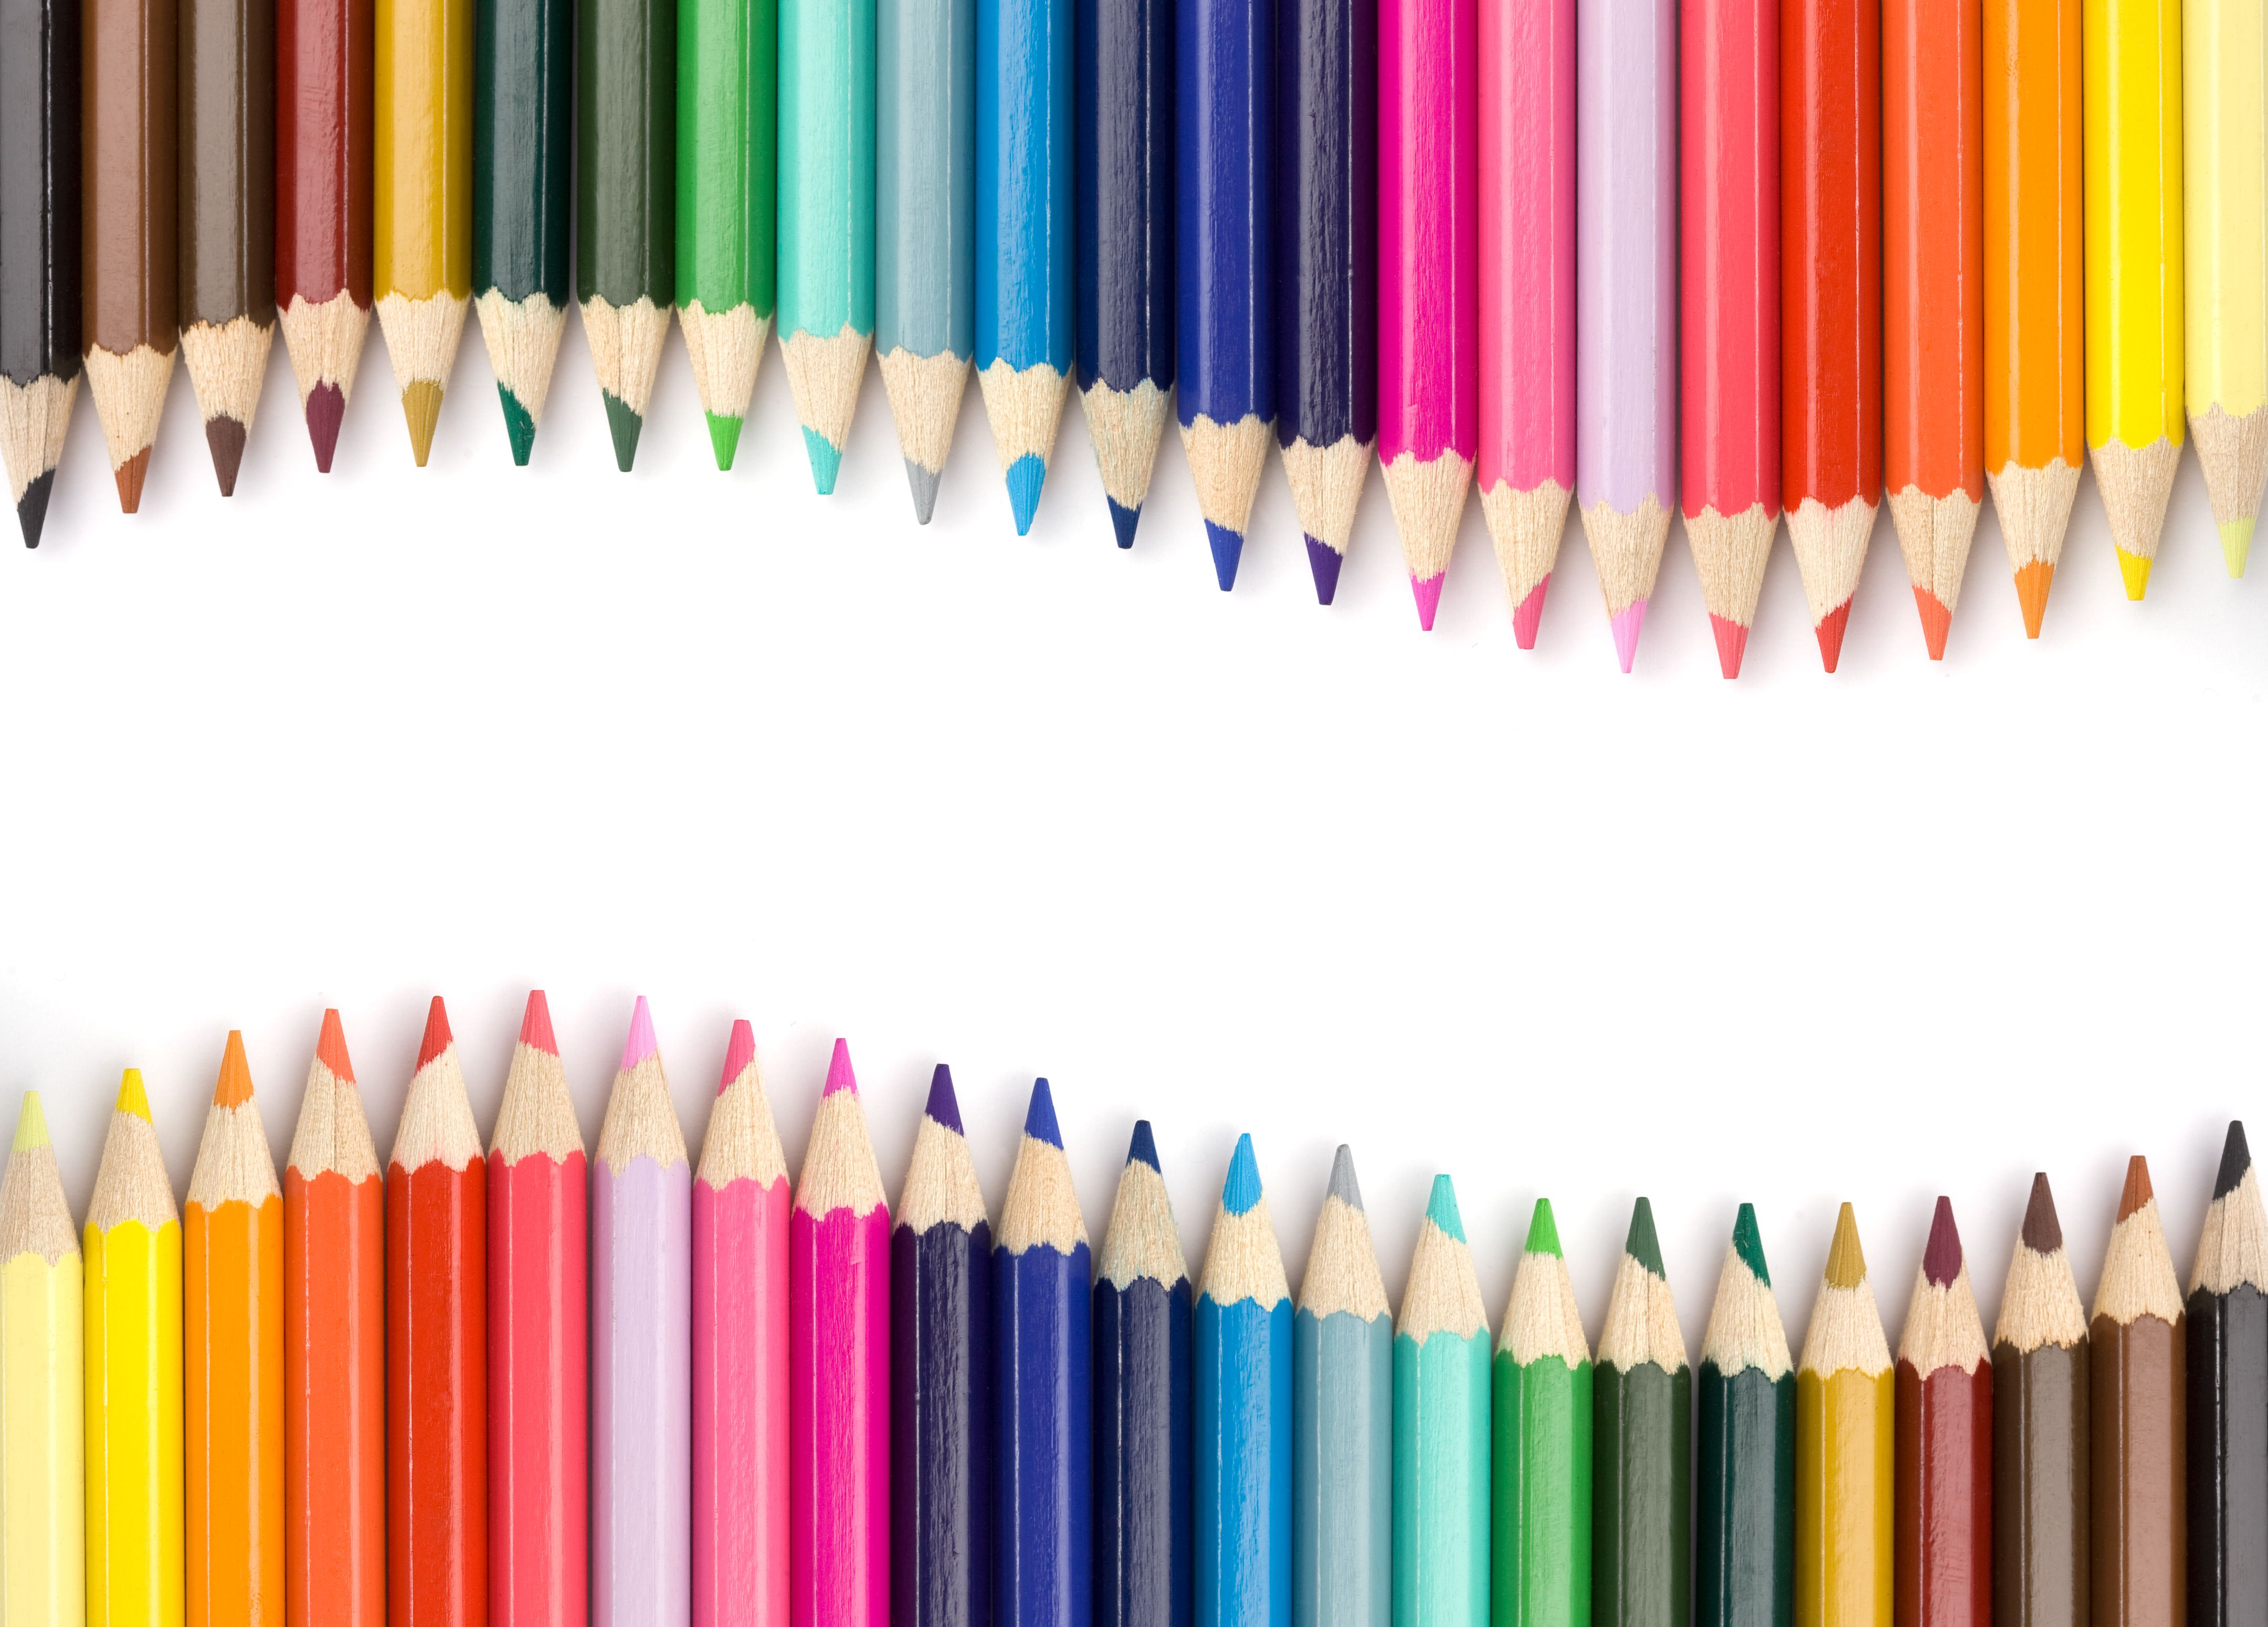 Sketching and Drawing: Best Types of Pencils to Use